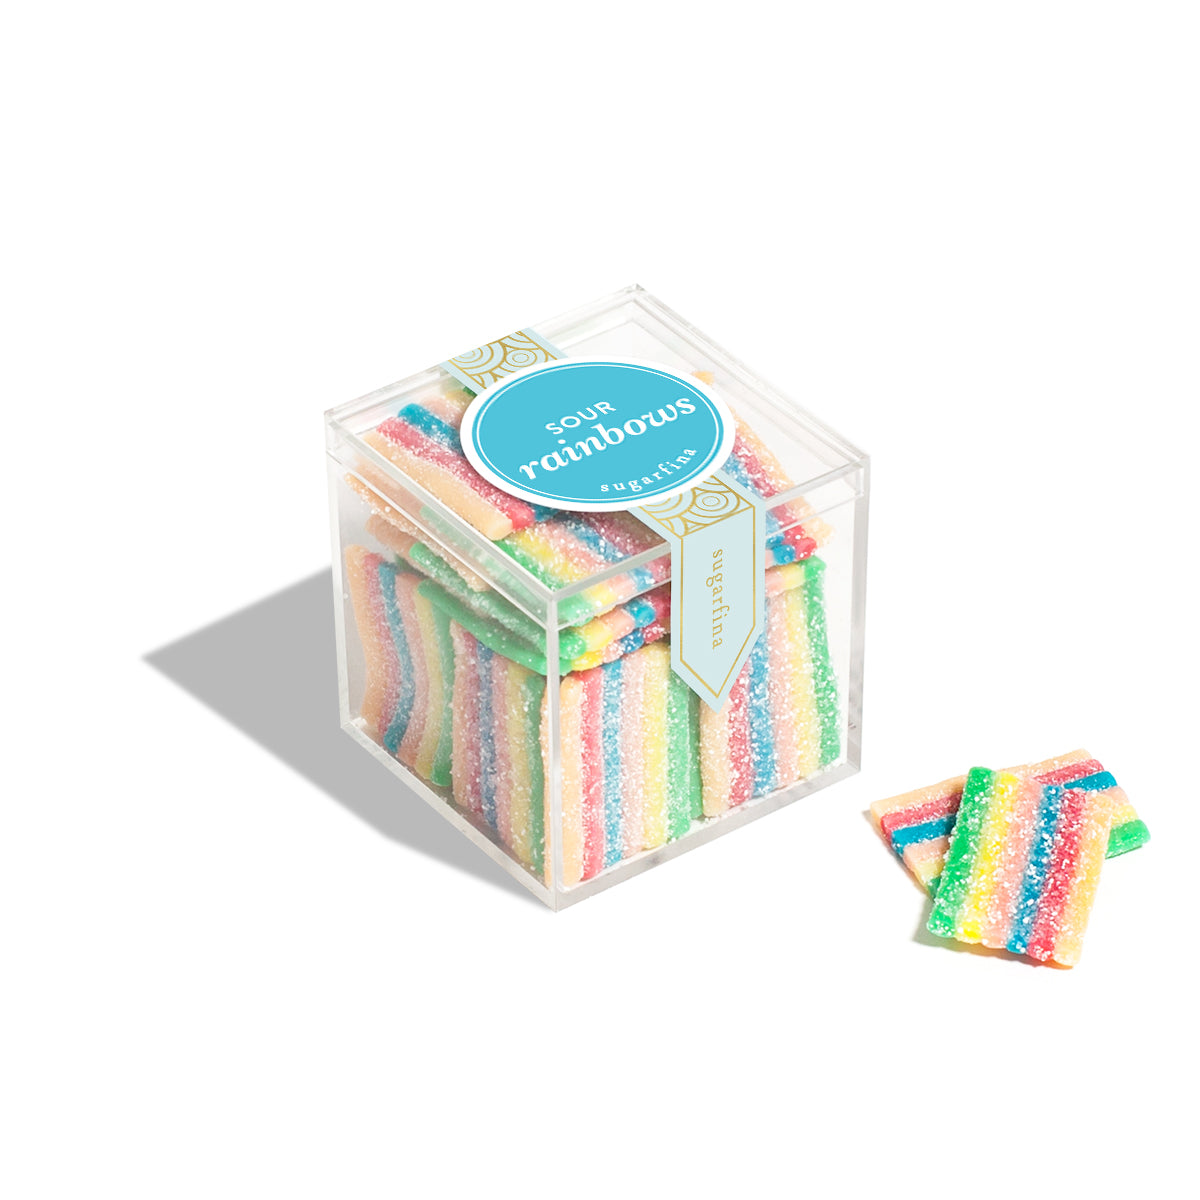 Sugarfina Candy Cube - Sour Rainbows